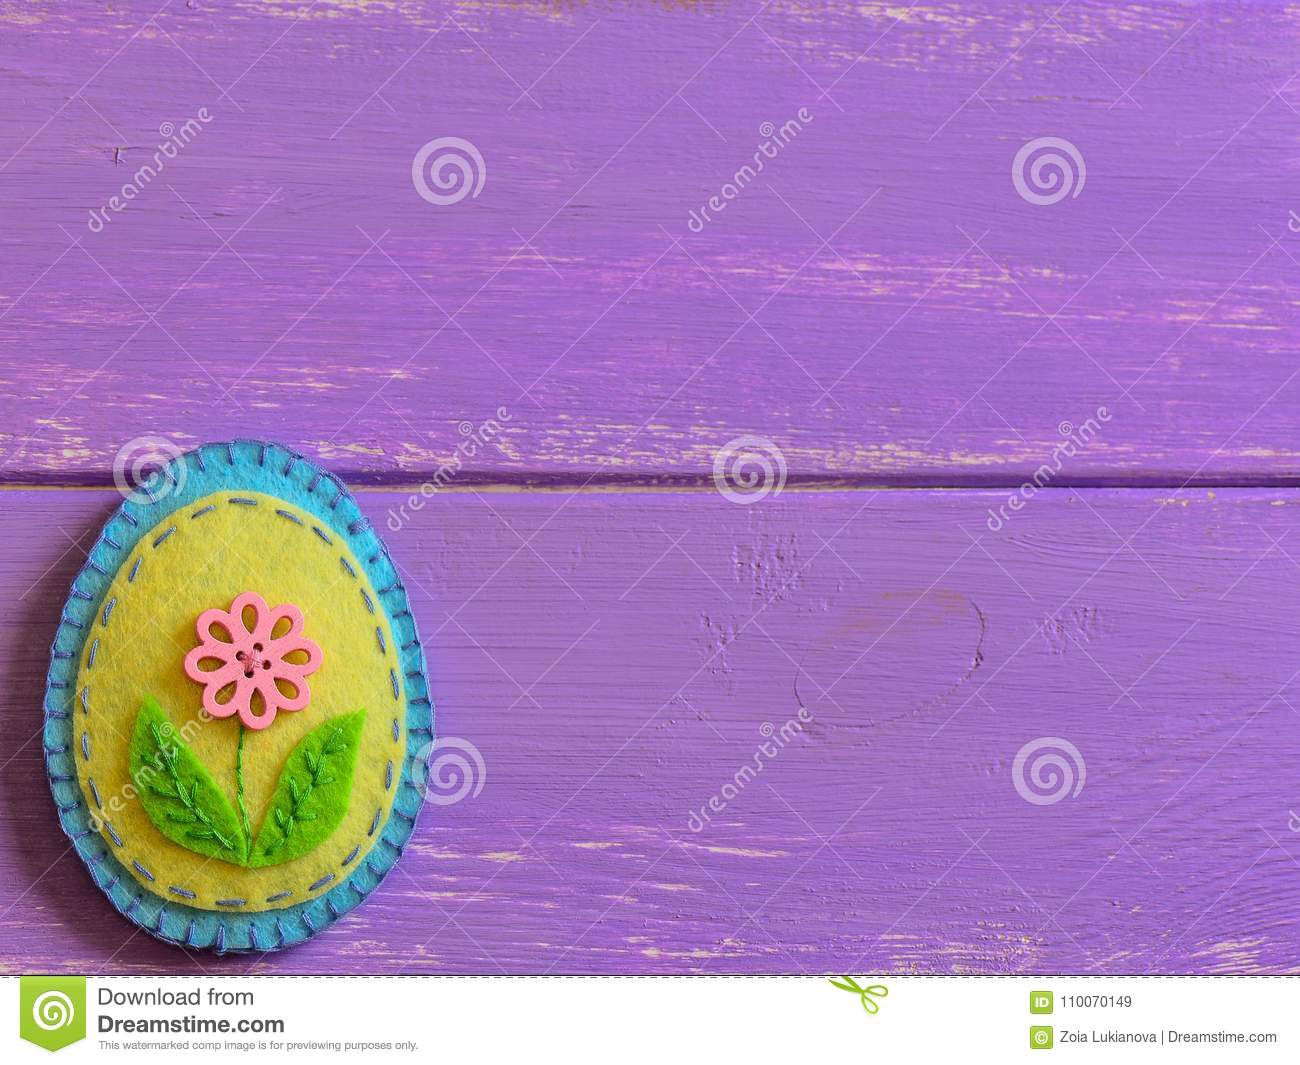 Felt Easter Egg Decor With Pink Flower On A Wooden Background With